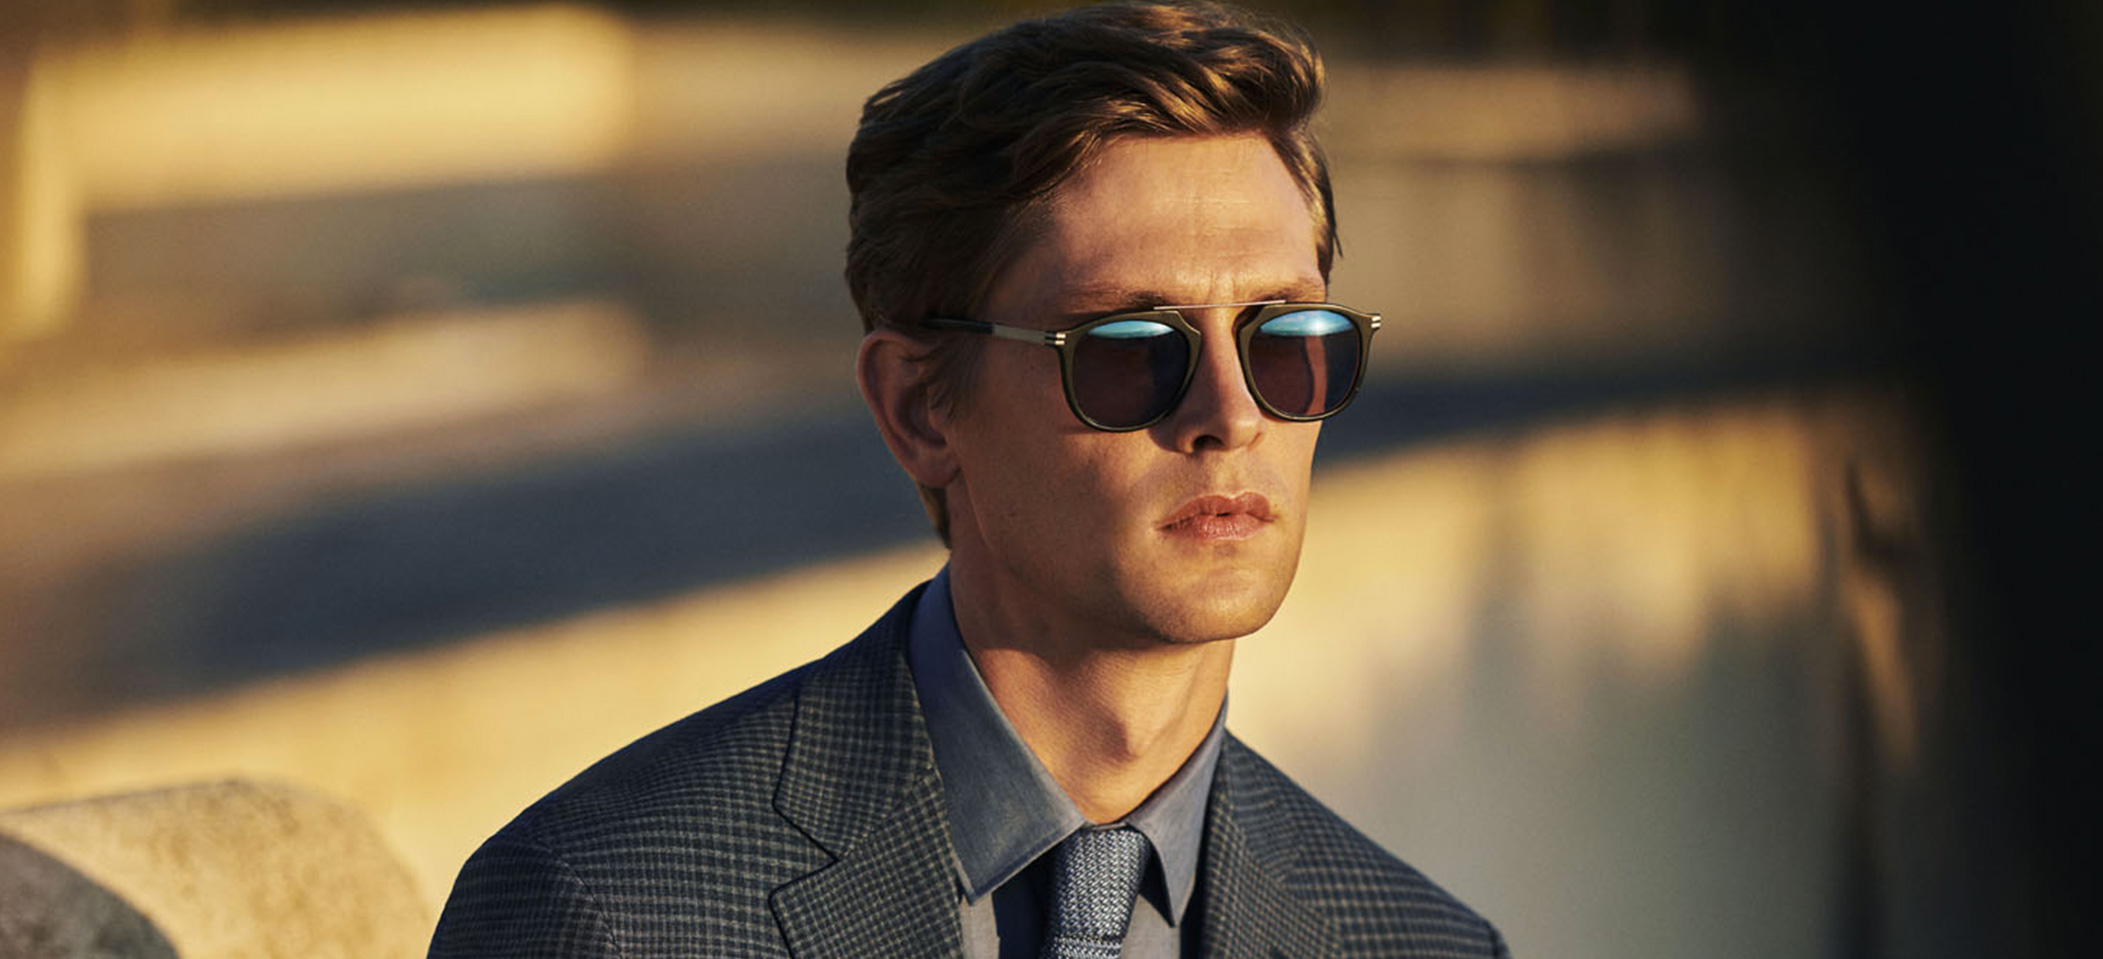 Canali Canali Eyewear Collection: elegance at first sight